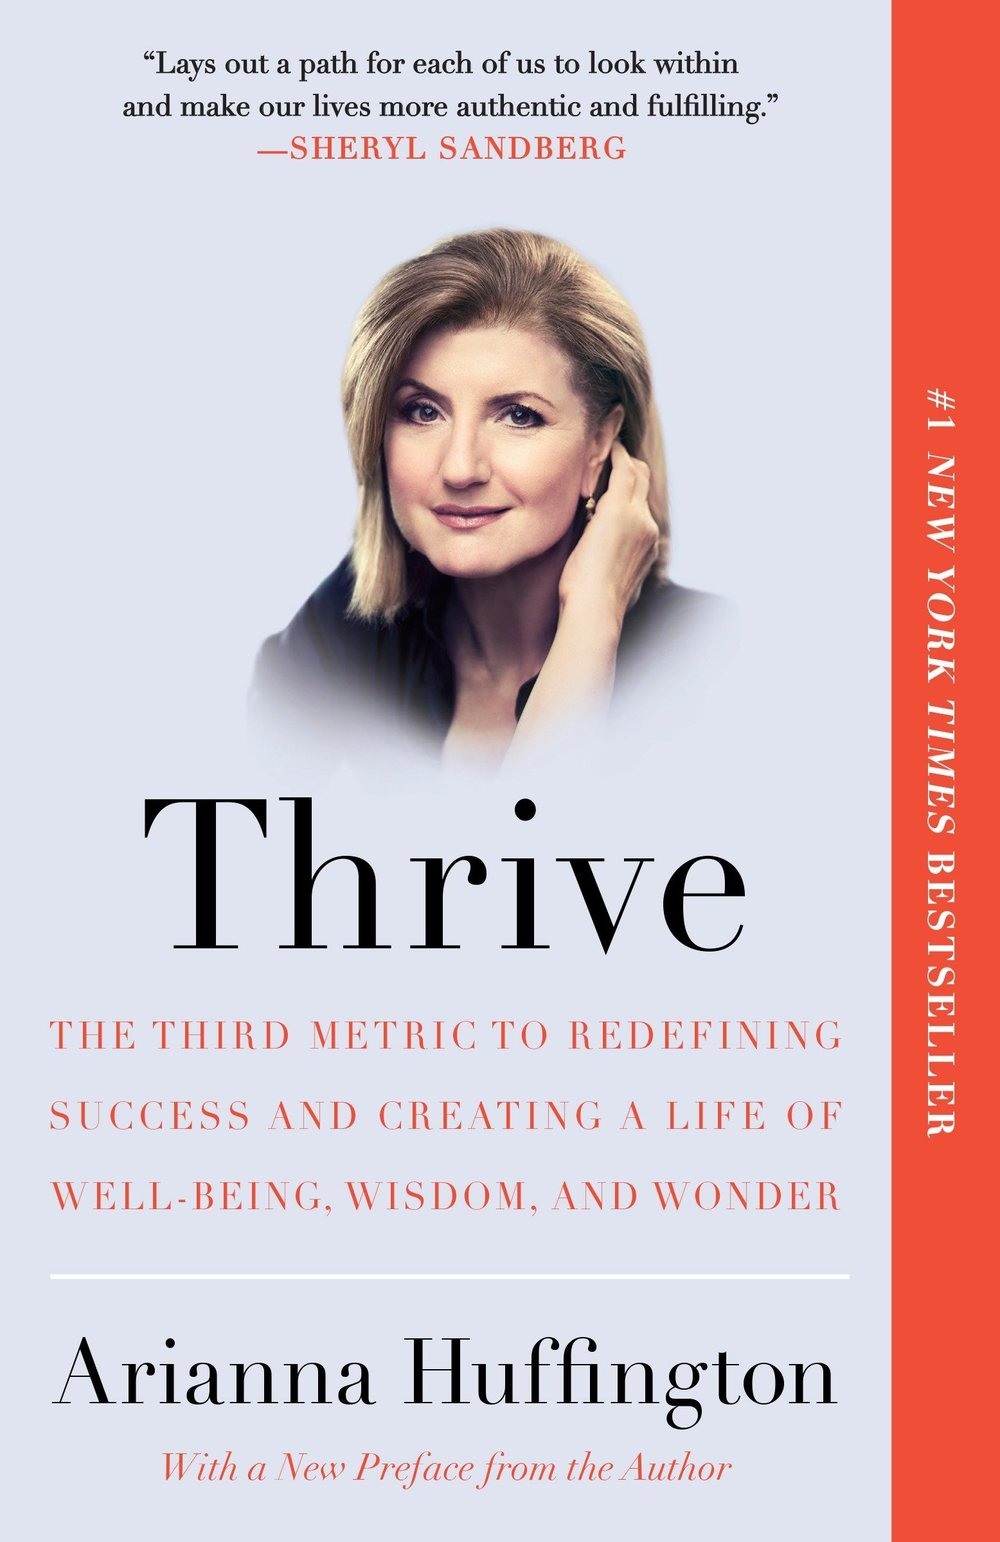 Best Career Books For Women - Thrive by Arianna Huffington